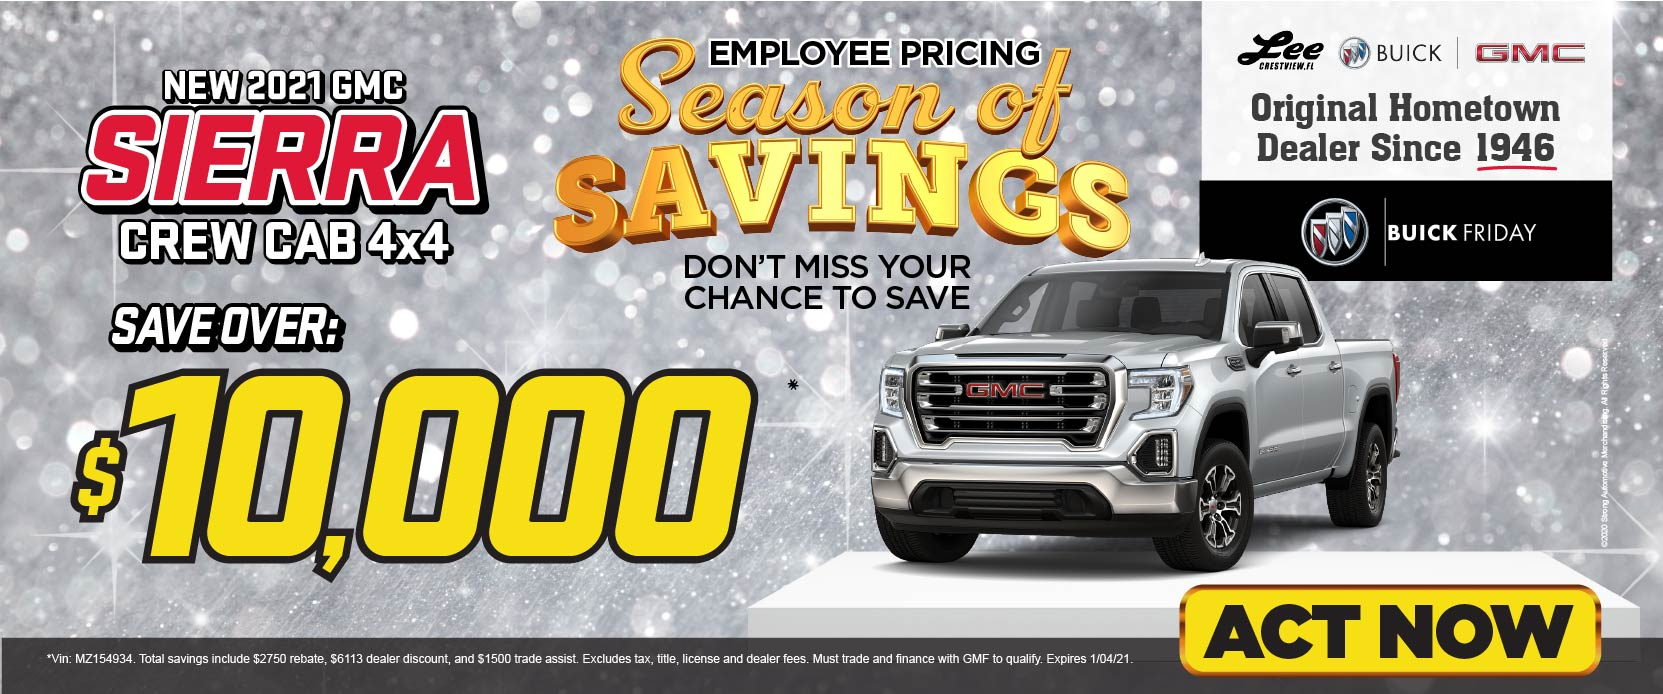 New 2021 GMC Sierra - Save over $10,000